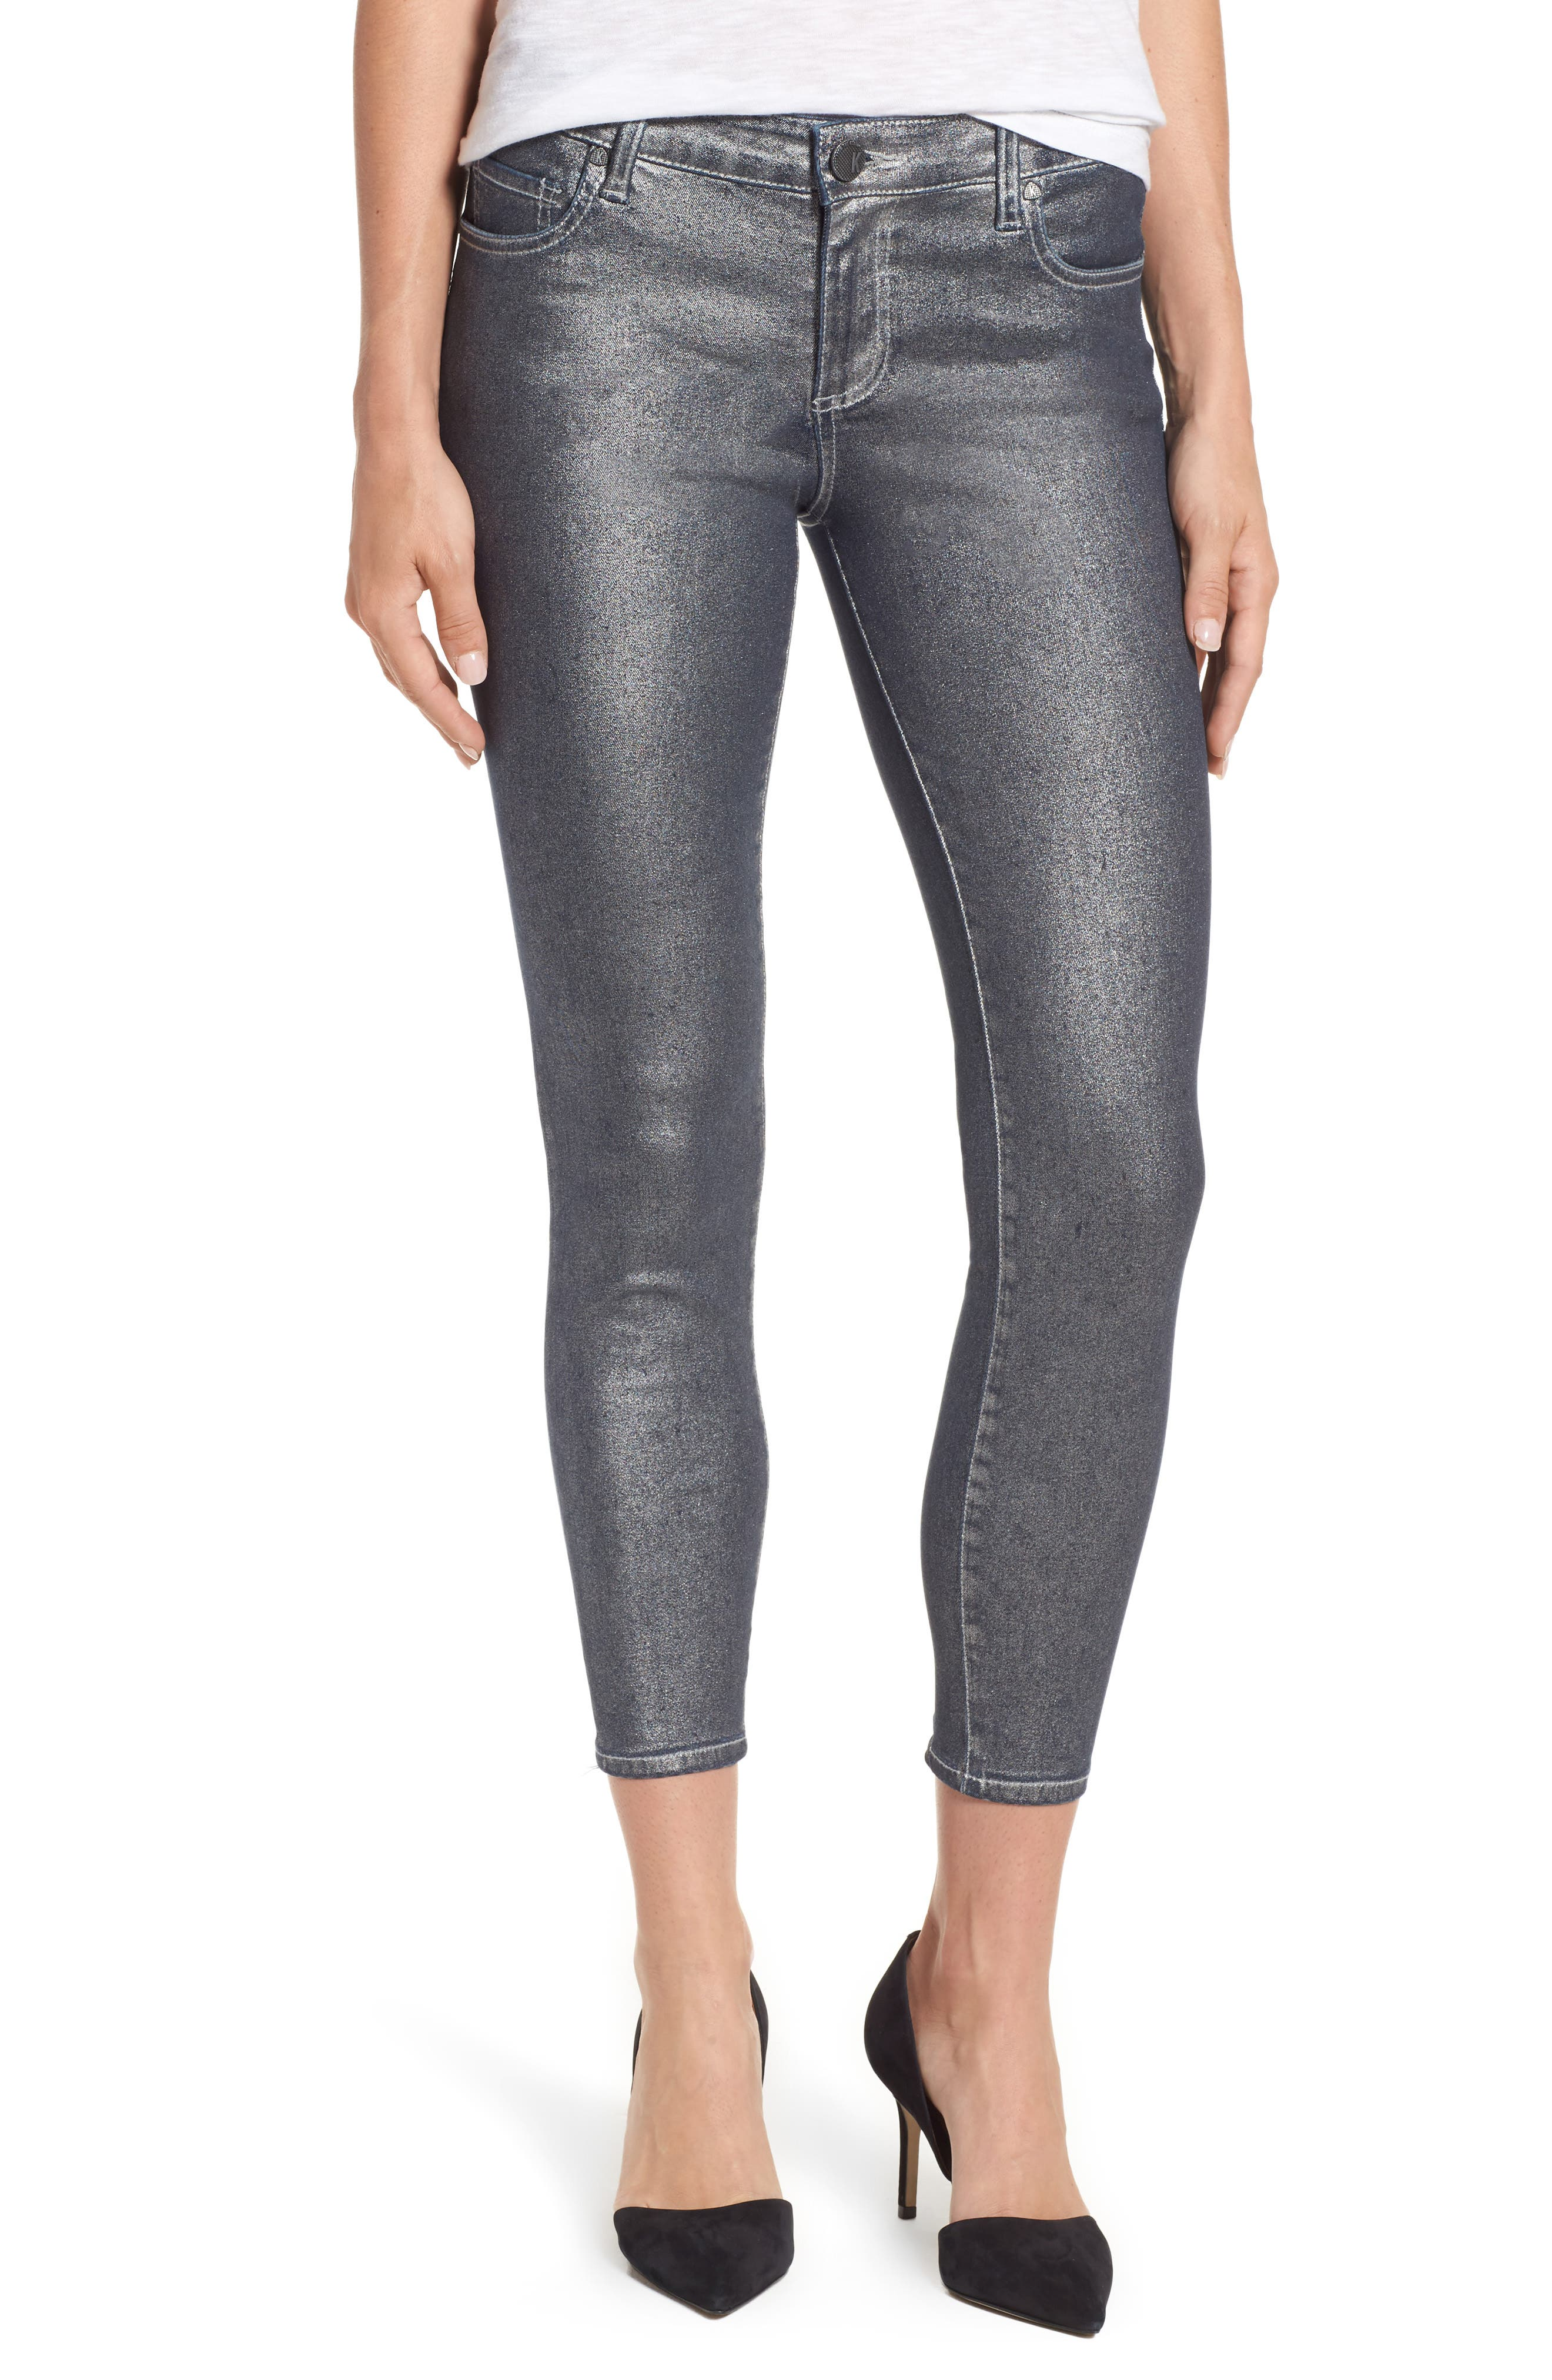 Connie Ankle Zipper Jeans,                         Main,                         color, CHARCOAL GREY